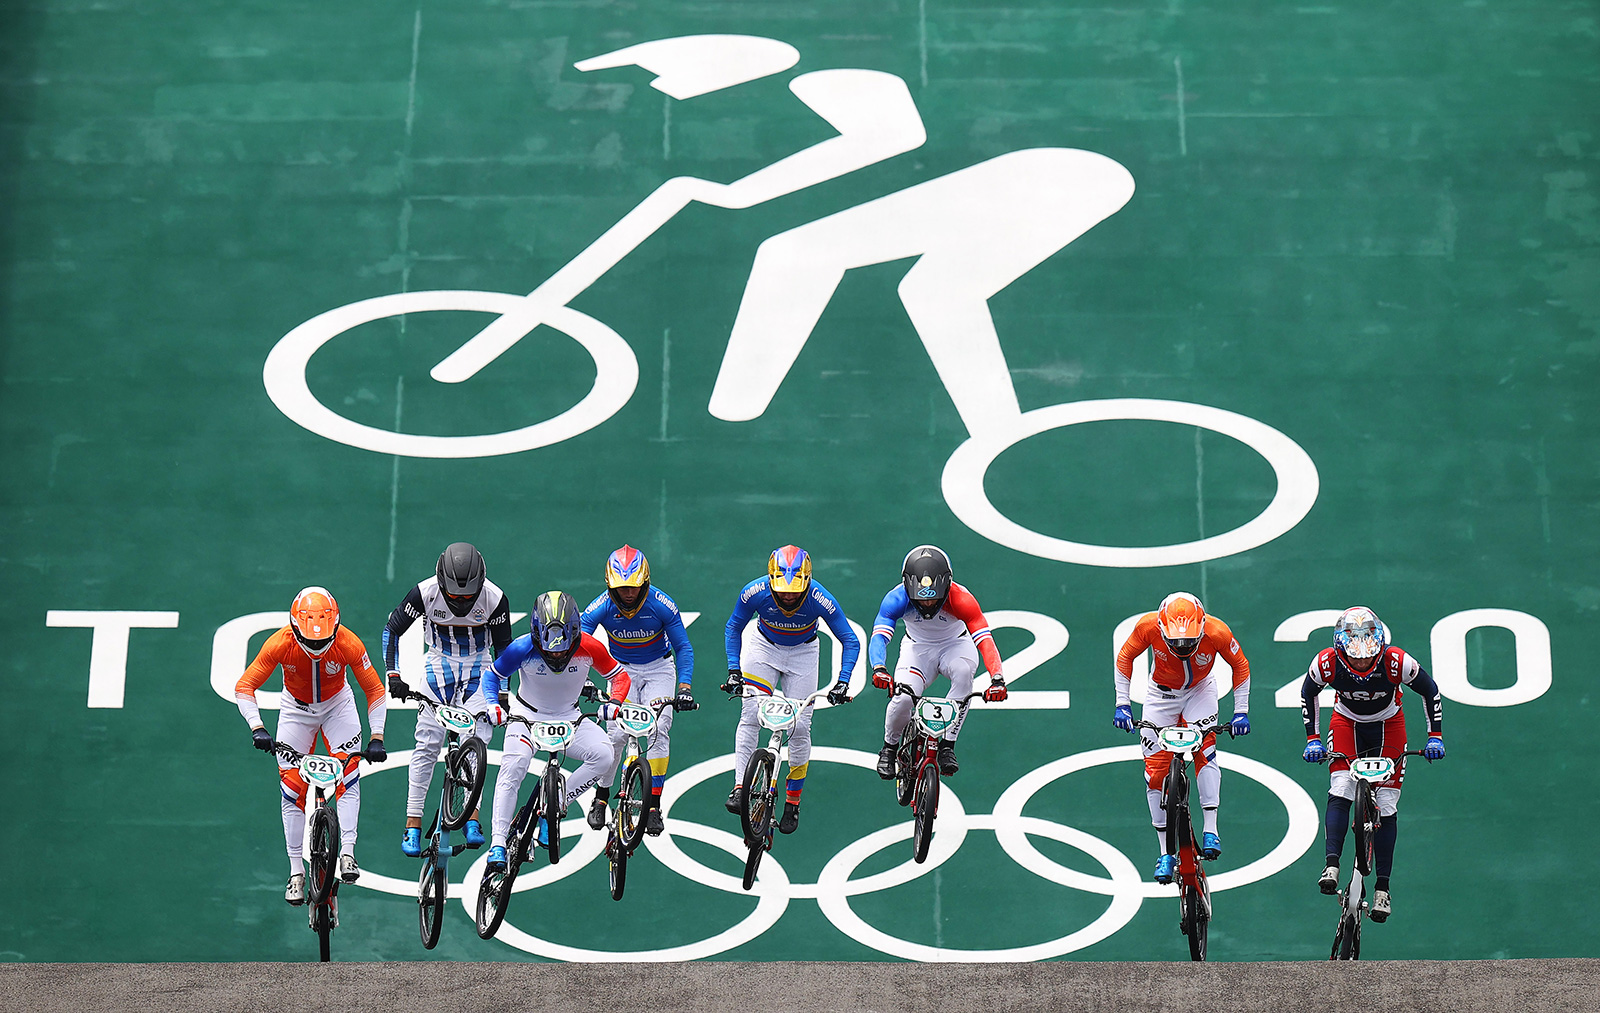 Racers jump during the men's BMX semifinals on Friday in Tokyo.